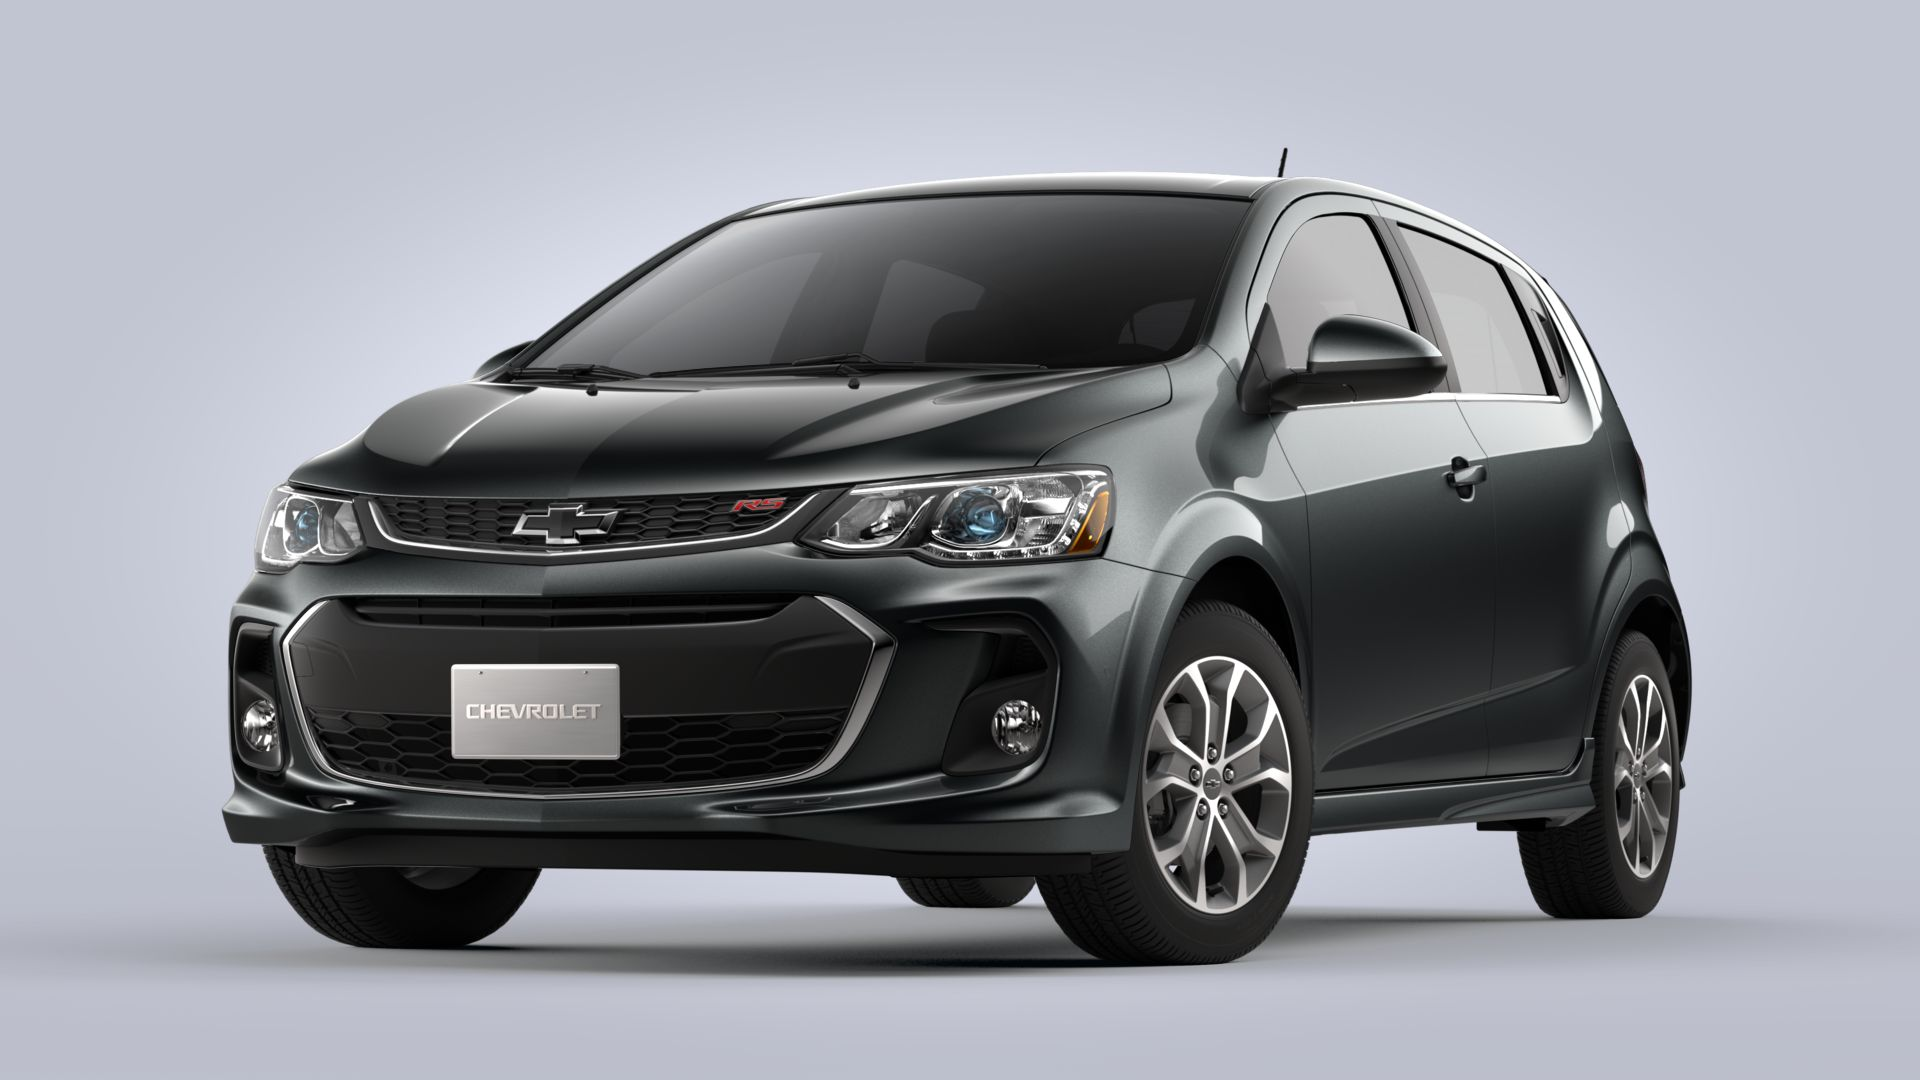 2020 Chevrolet Sonic LT 5-Door